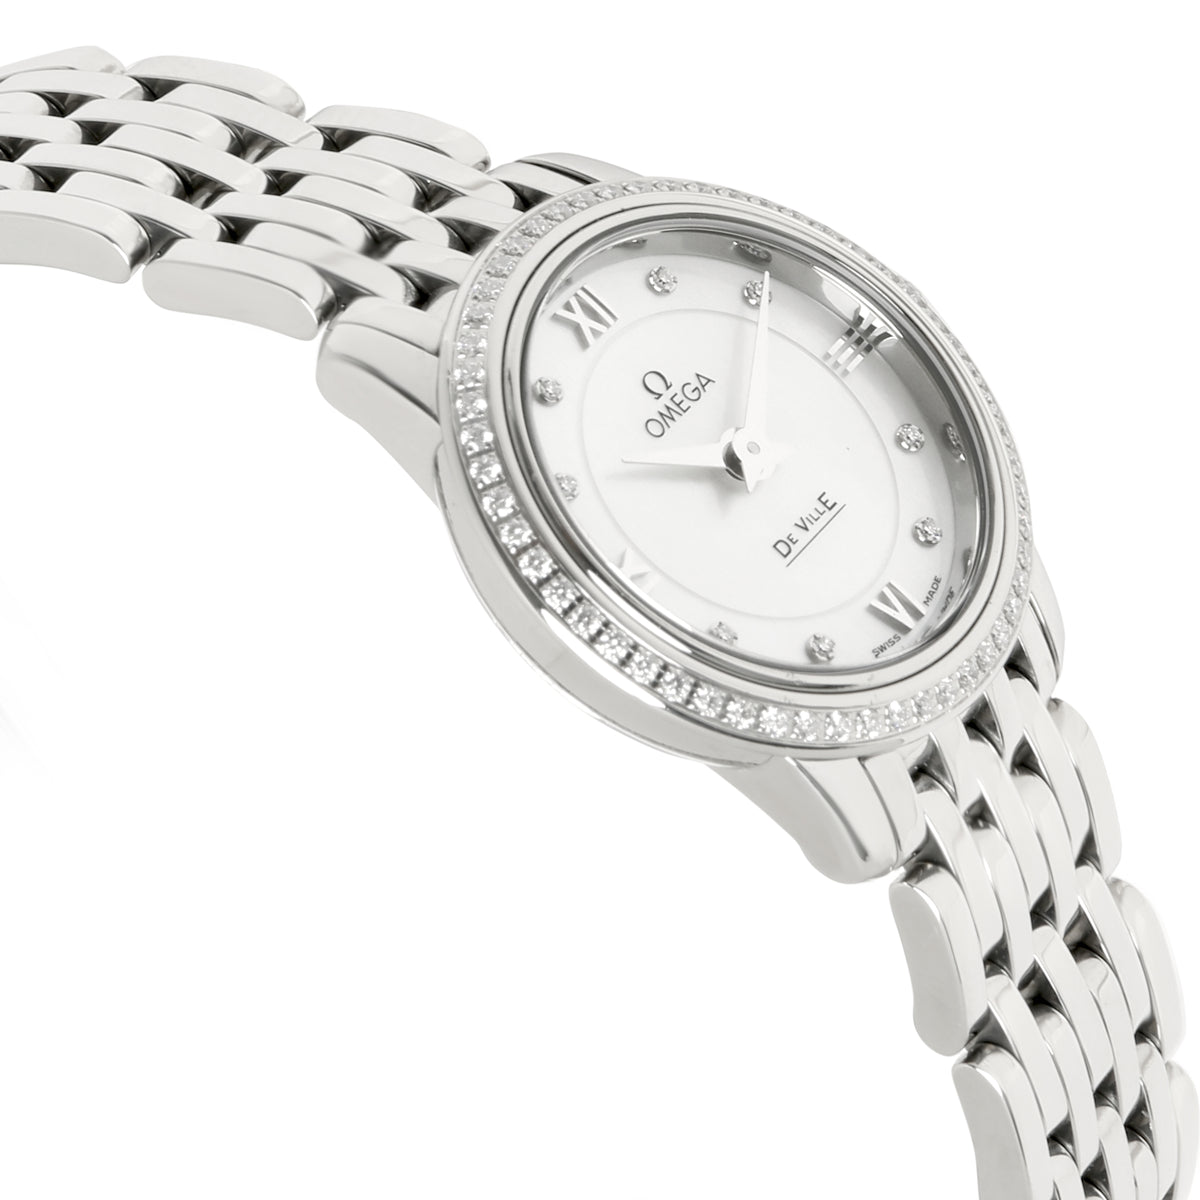 Omega De Ville Prestige 424.15.24.60.55.001 Women's Watch in  Stainless Steel